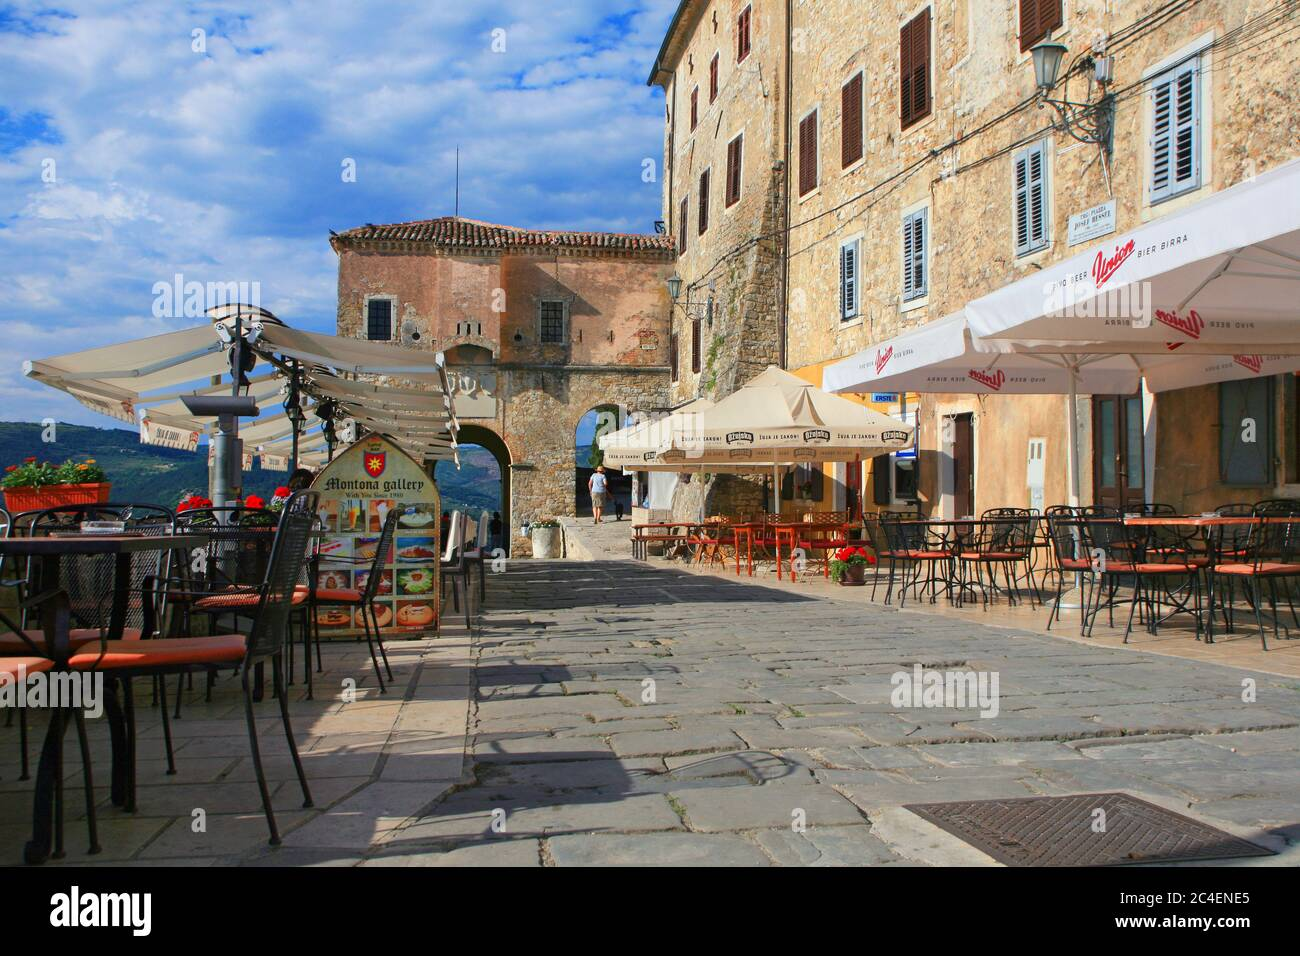 MOTOVUN, CROATIA - SEPTEMBER 15, 2011: The old town wall with the city gate and coffee bars in Motovun in Istria Stock Photo